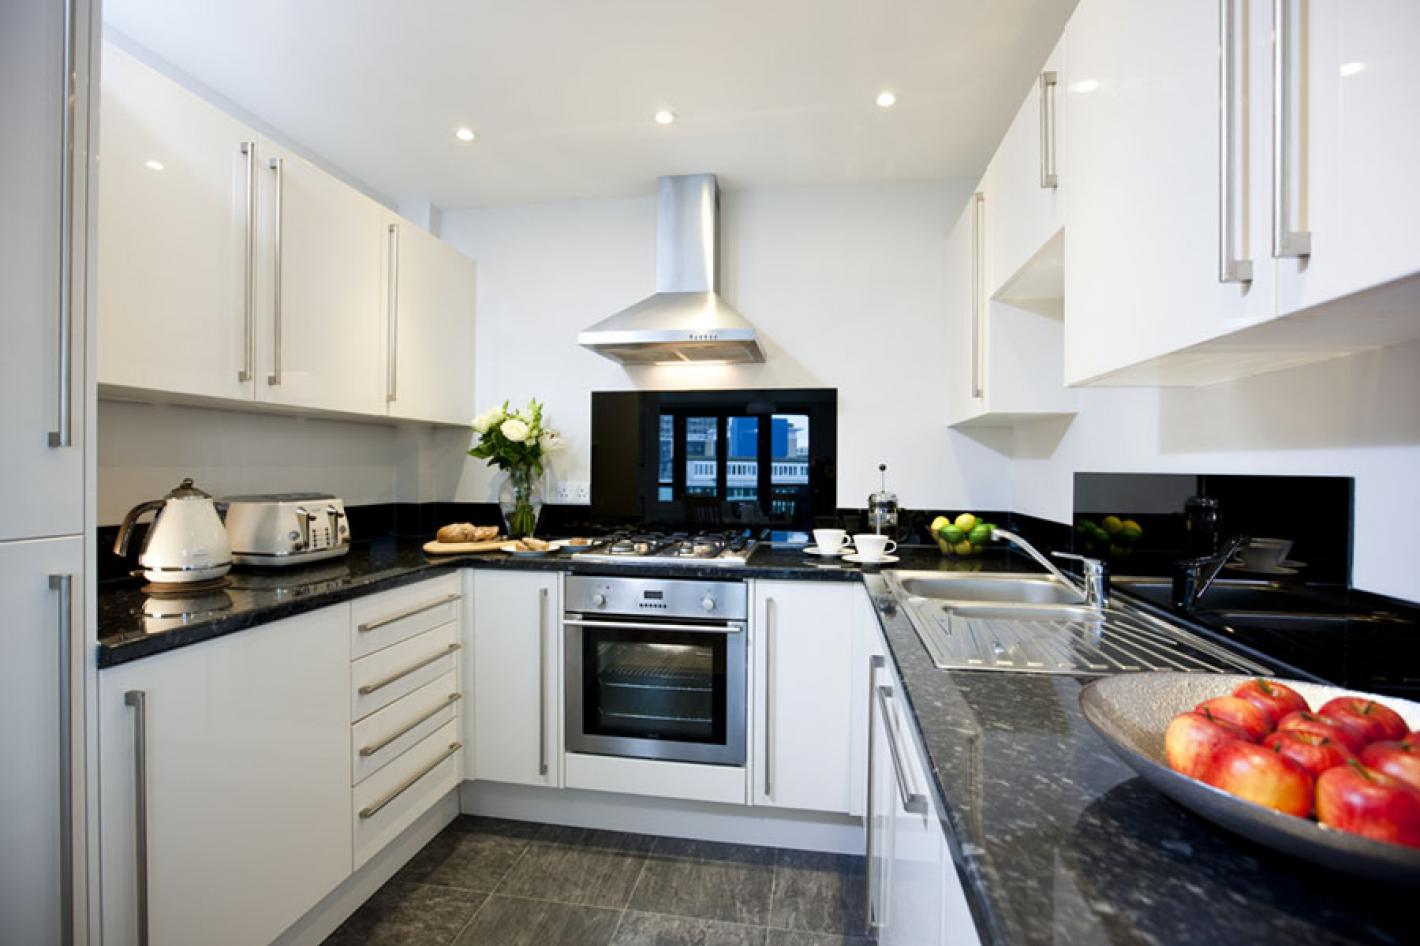 black and white kitchen, granite work tops, built in oven